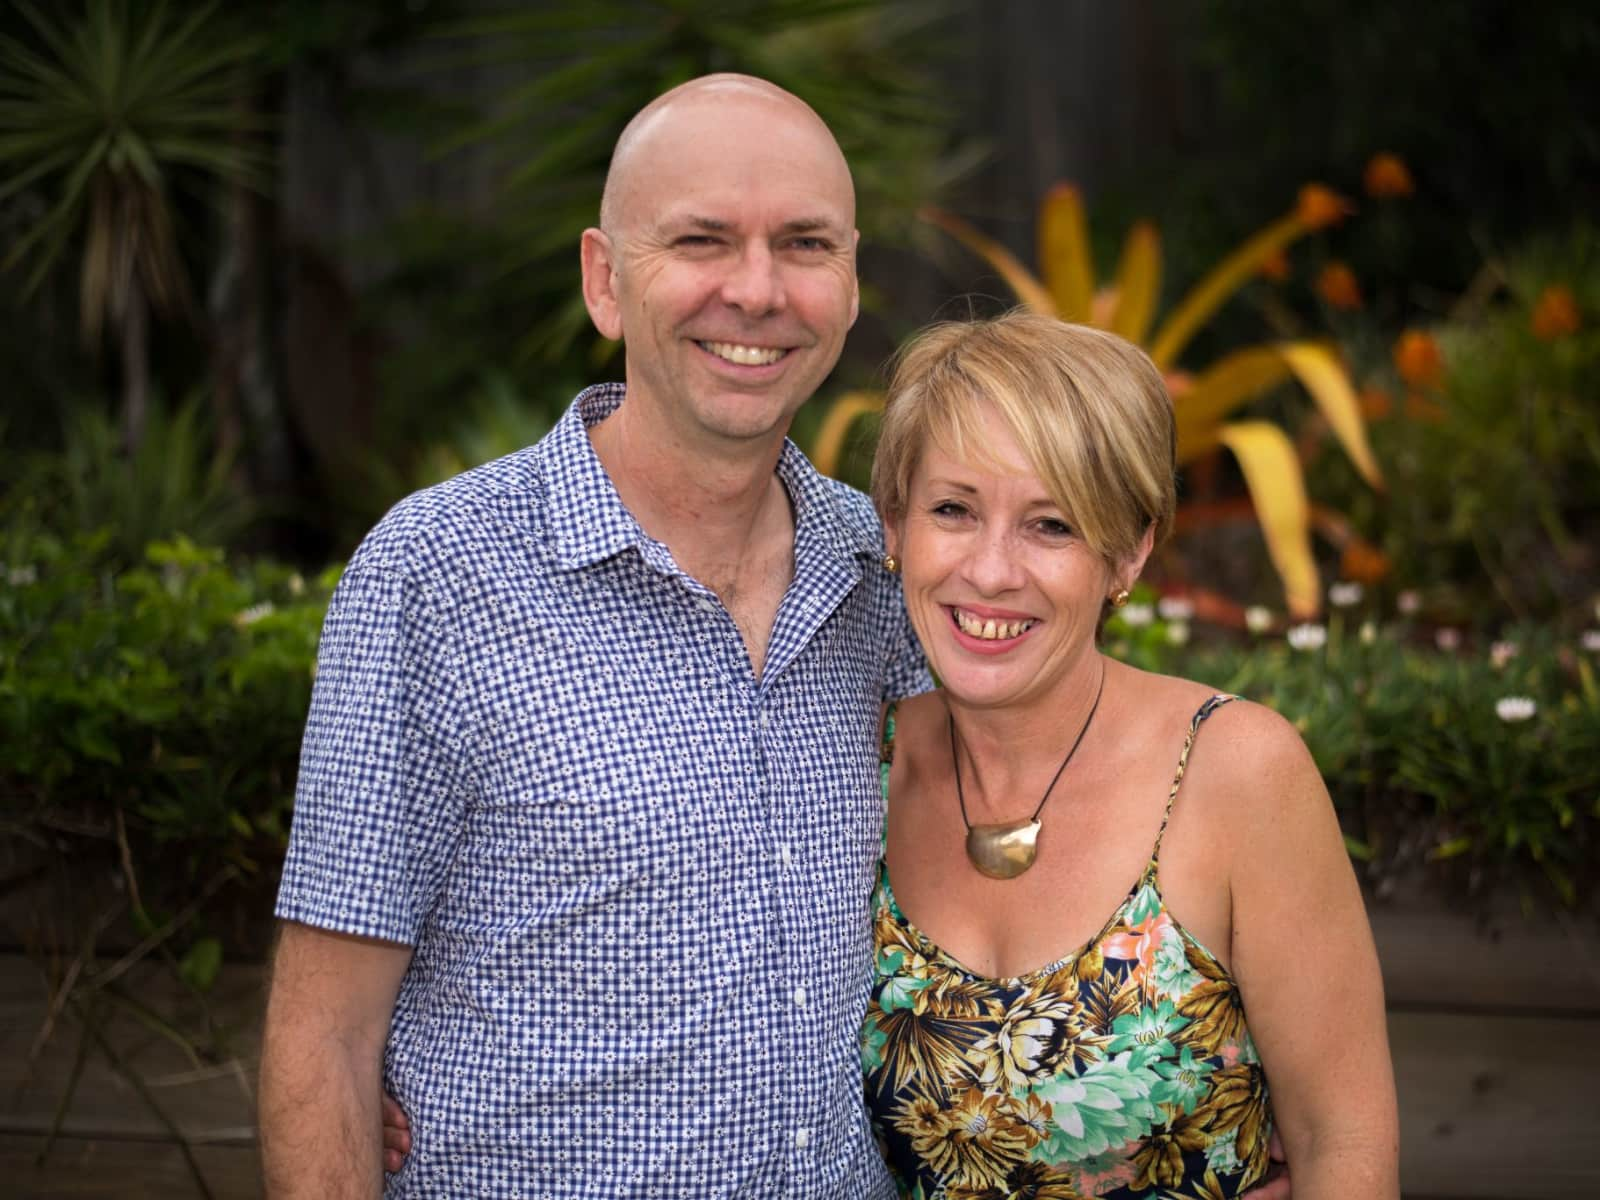 Tony & Leanne from Gold Coast, Queensland, Australia